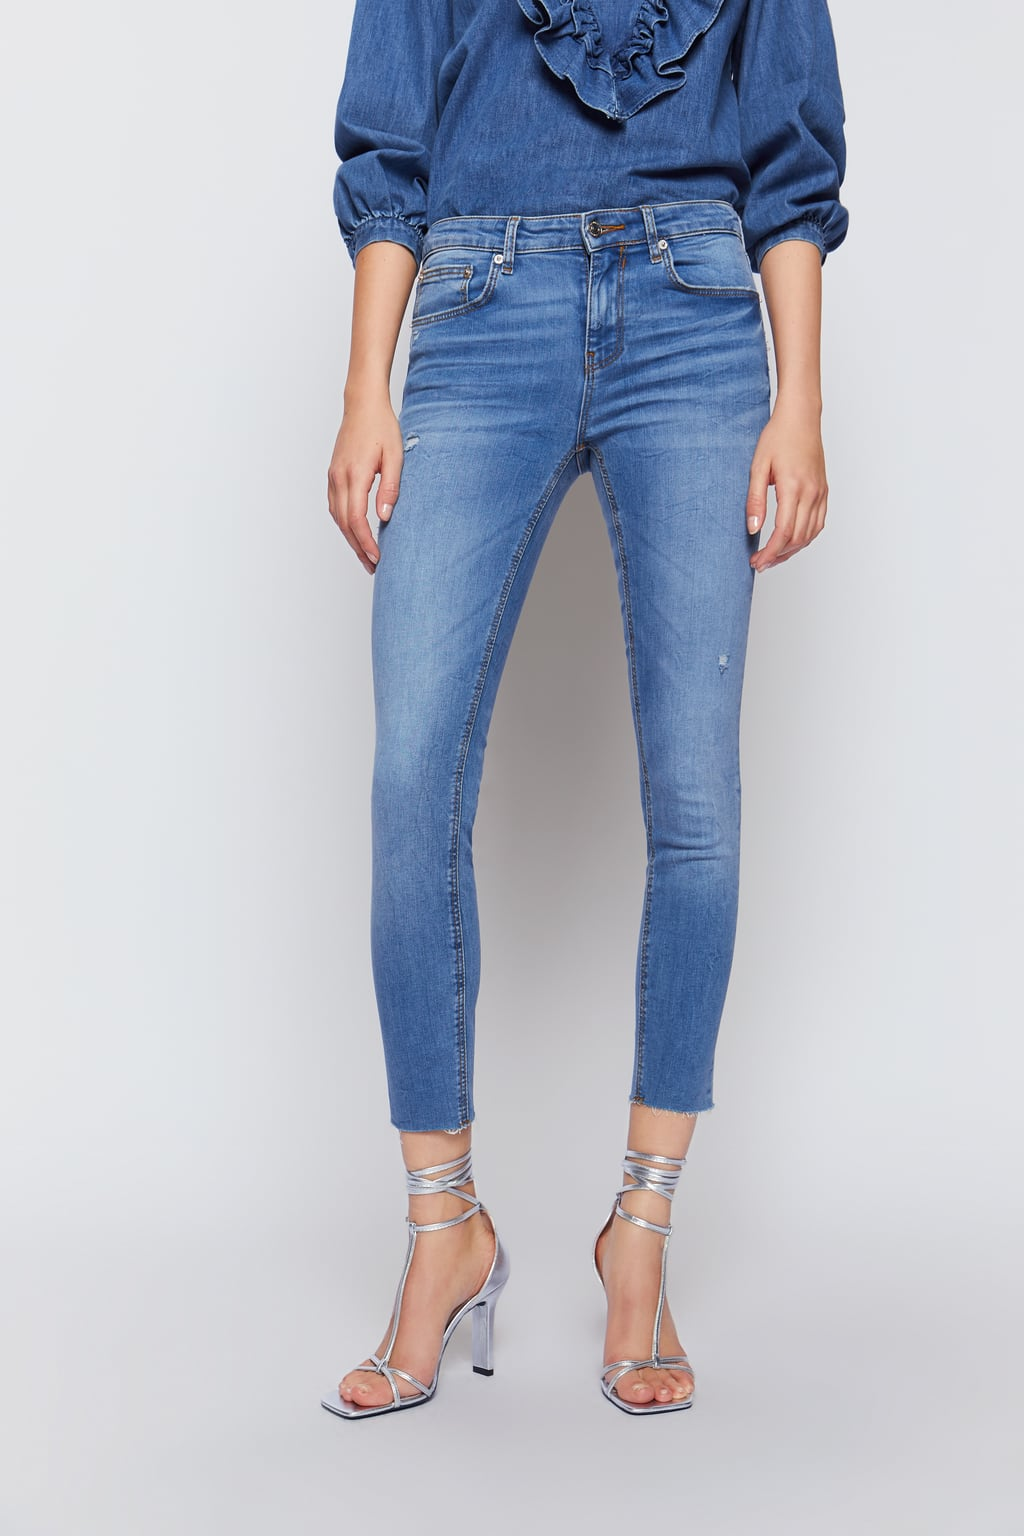 8d326a213ec09 Women's Jeans | New Collection Online | ZARA India